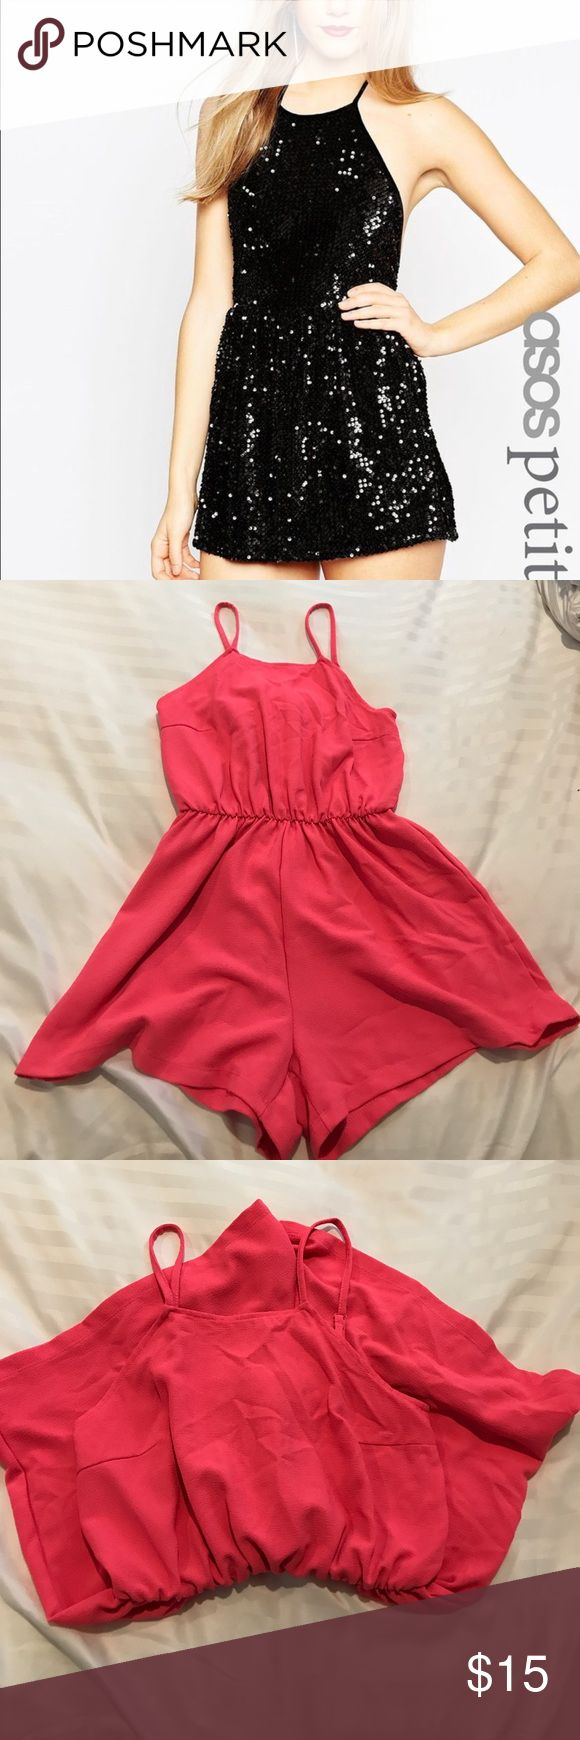 Asos petite playsuit in bright pink Picture one is for reference, that is the style. Size is uk6/us2 petite size.  No lo ger fits.  Used once, perfect condition 📌sales are final📌 ASOS Pants Jumpsuits & Rompers